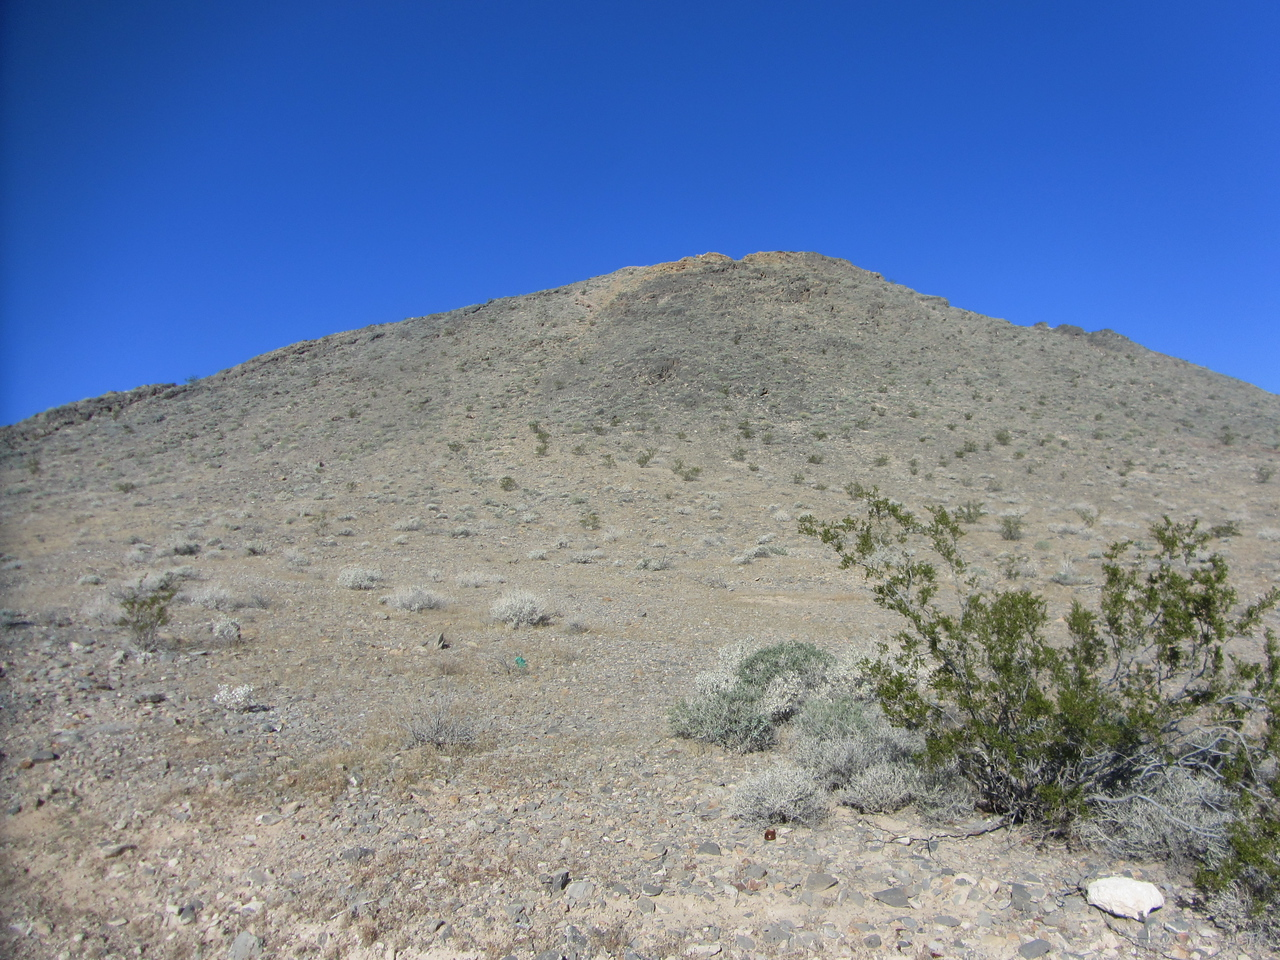 The ridge we gained and followed from parking area.